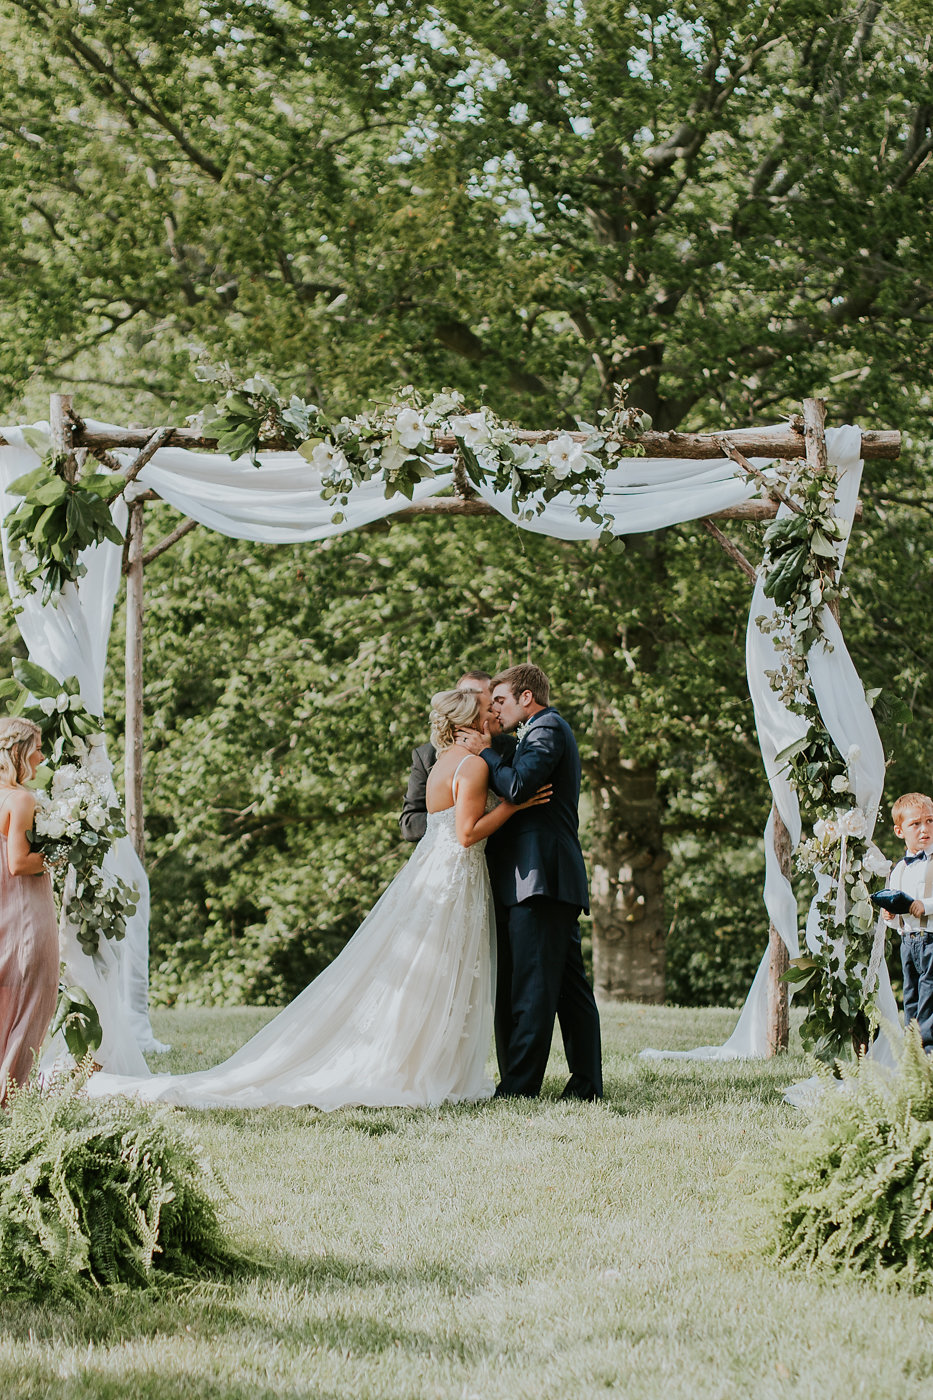 Gorgeous Wedding Arch - North Carolina Wedding Venue - Triple J Manor House Wedding